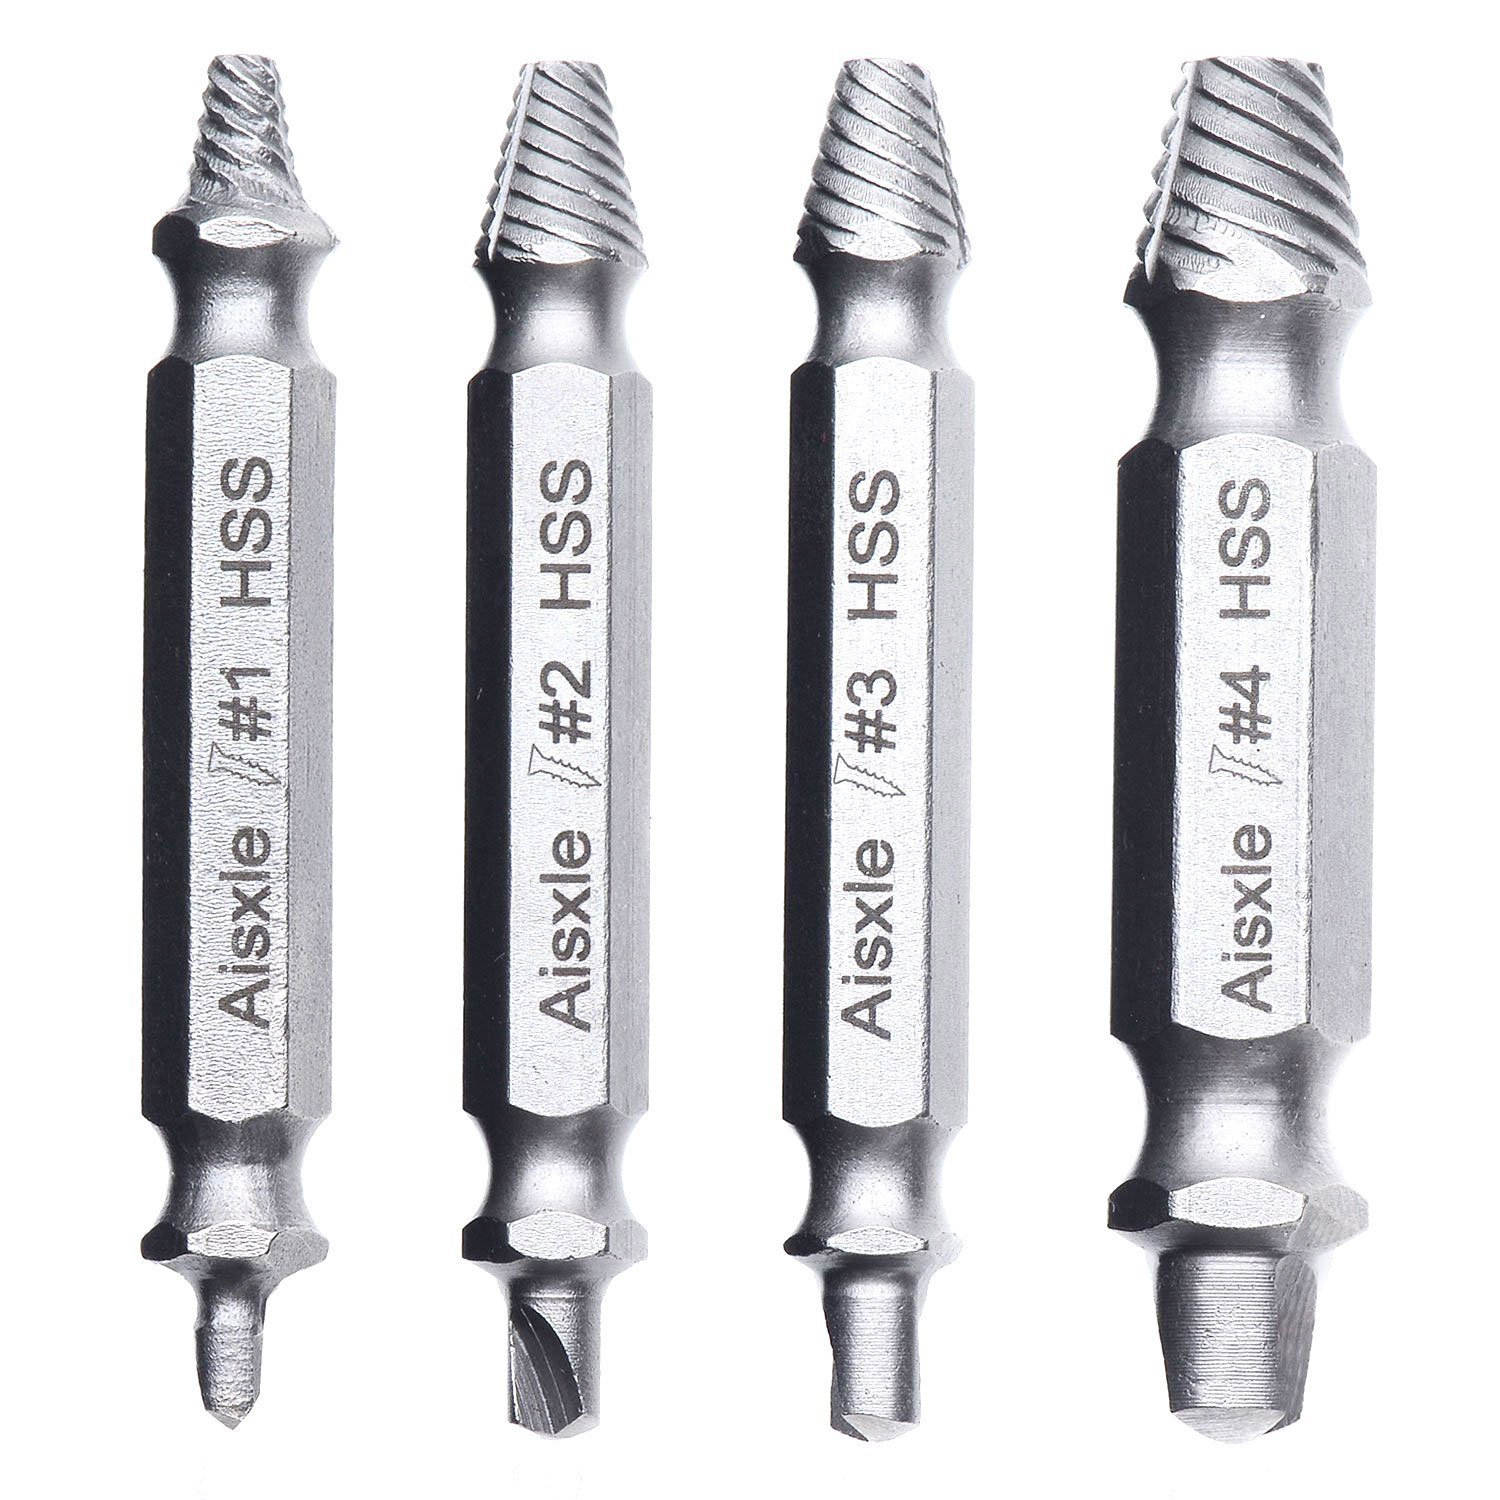 Damaged Screw Remover and Extractor Set by Aisxle,Easily Remove Stripped or Damaged Screws. Made From H.S.S. 4341#, the Hardness Is 62-63hrc,Set of 4 Stripped Screw Removers